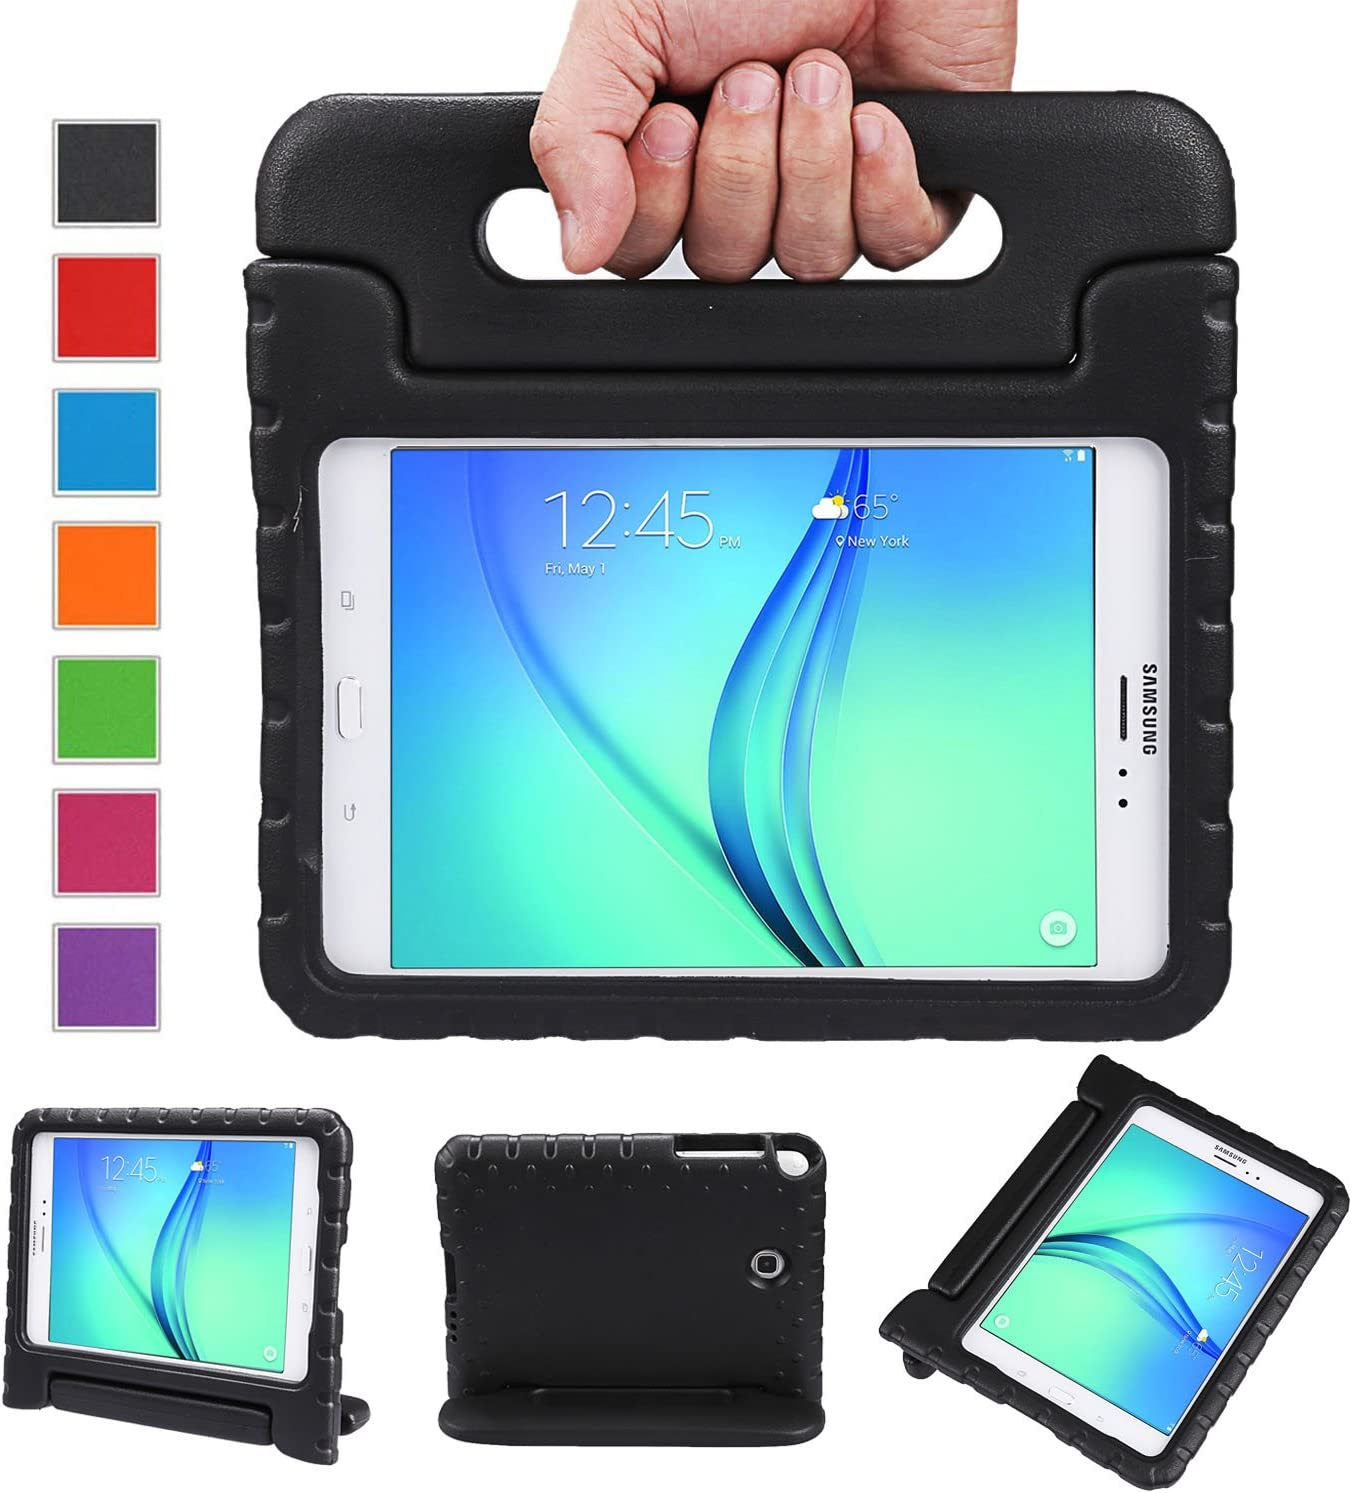 NEWSTYLE Tab A 8.0 Shockproof Case Light Weight Kids Case Super Protection Cover Handle Stand Case for Kids Children for Samsung Galaxy Tab A 8.0 8.0-inch SM-T350 - Black Color